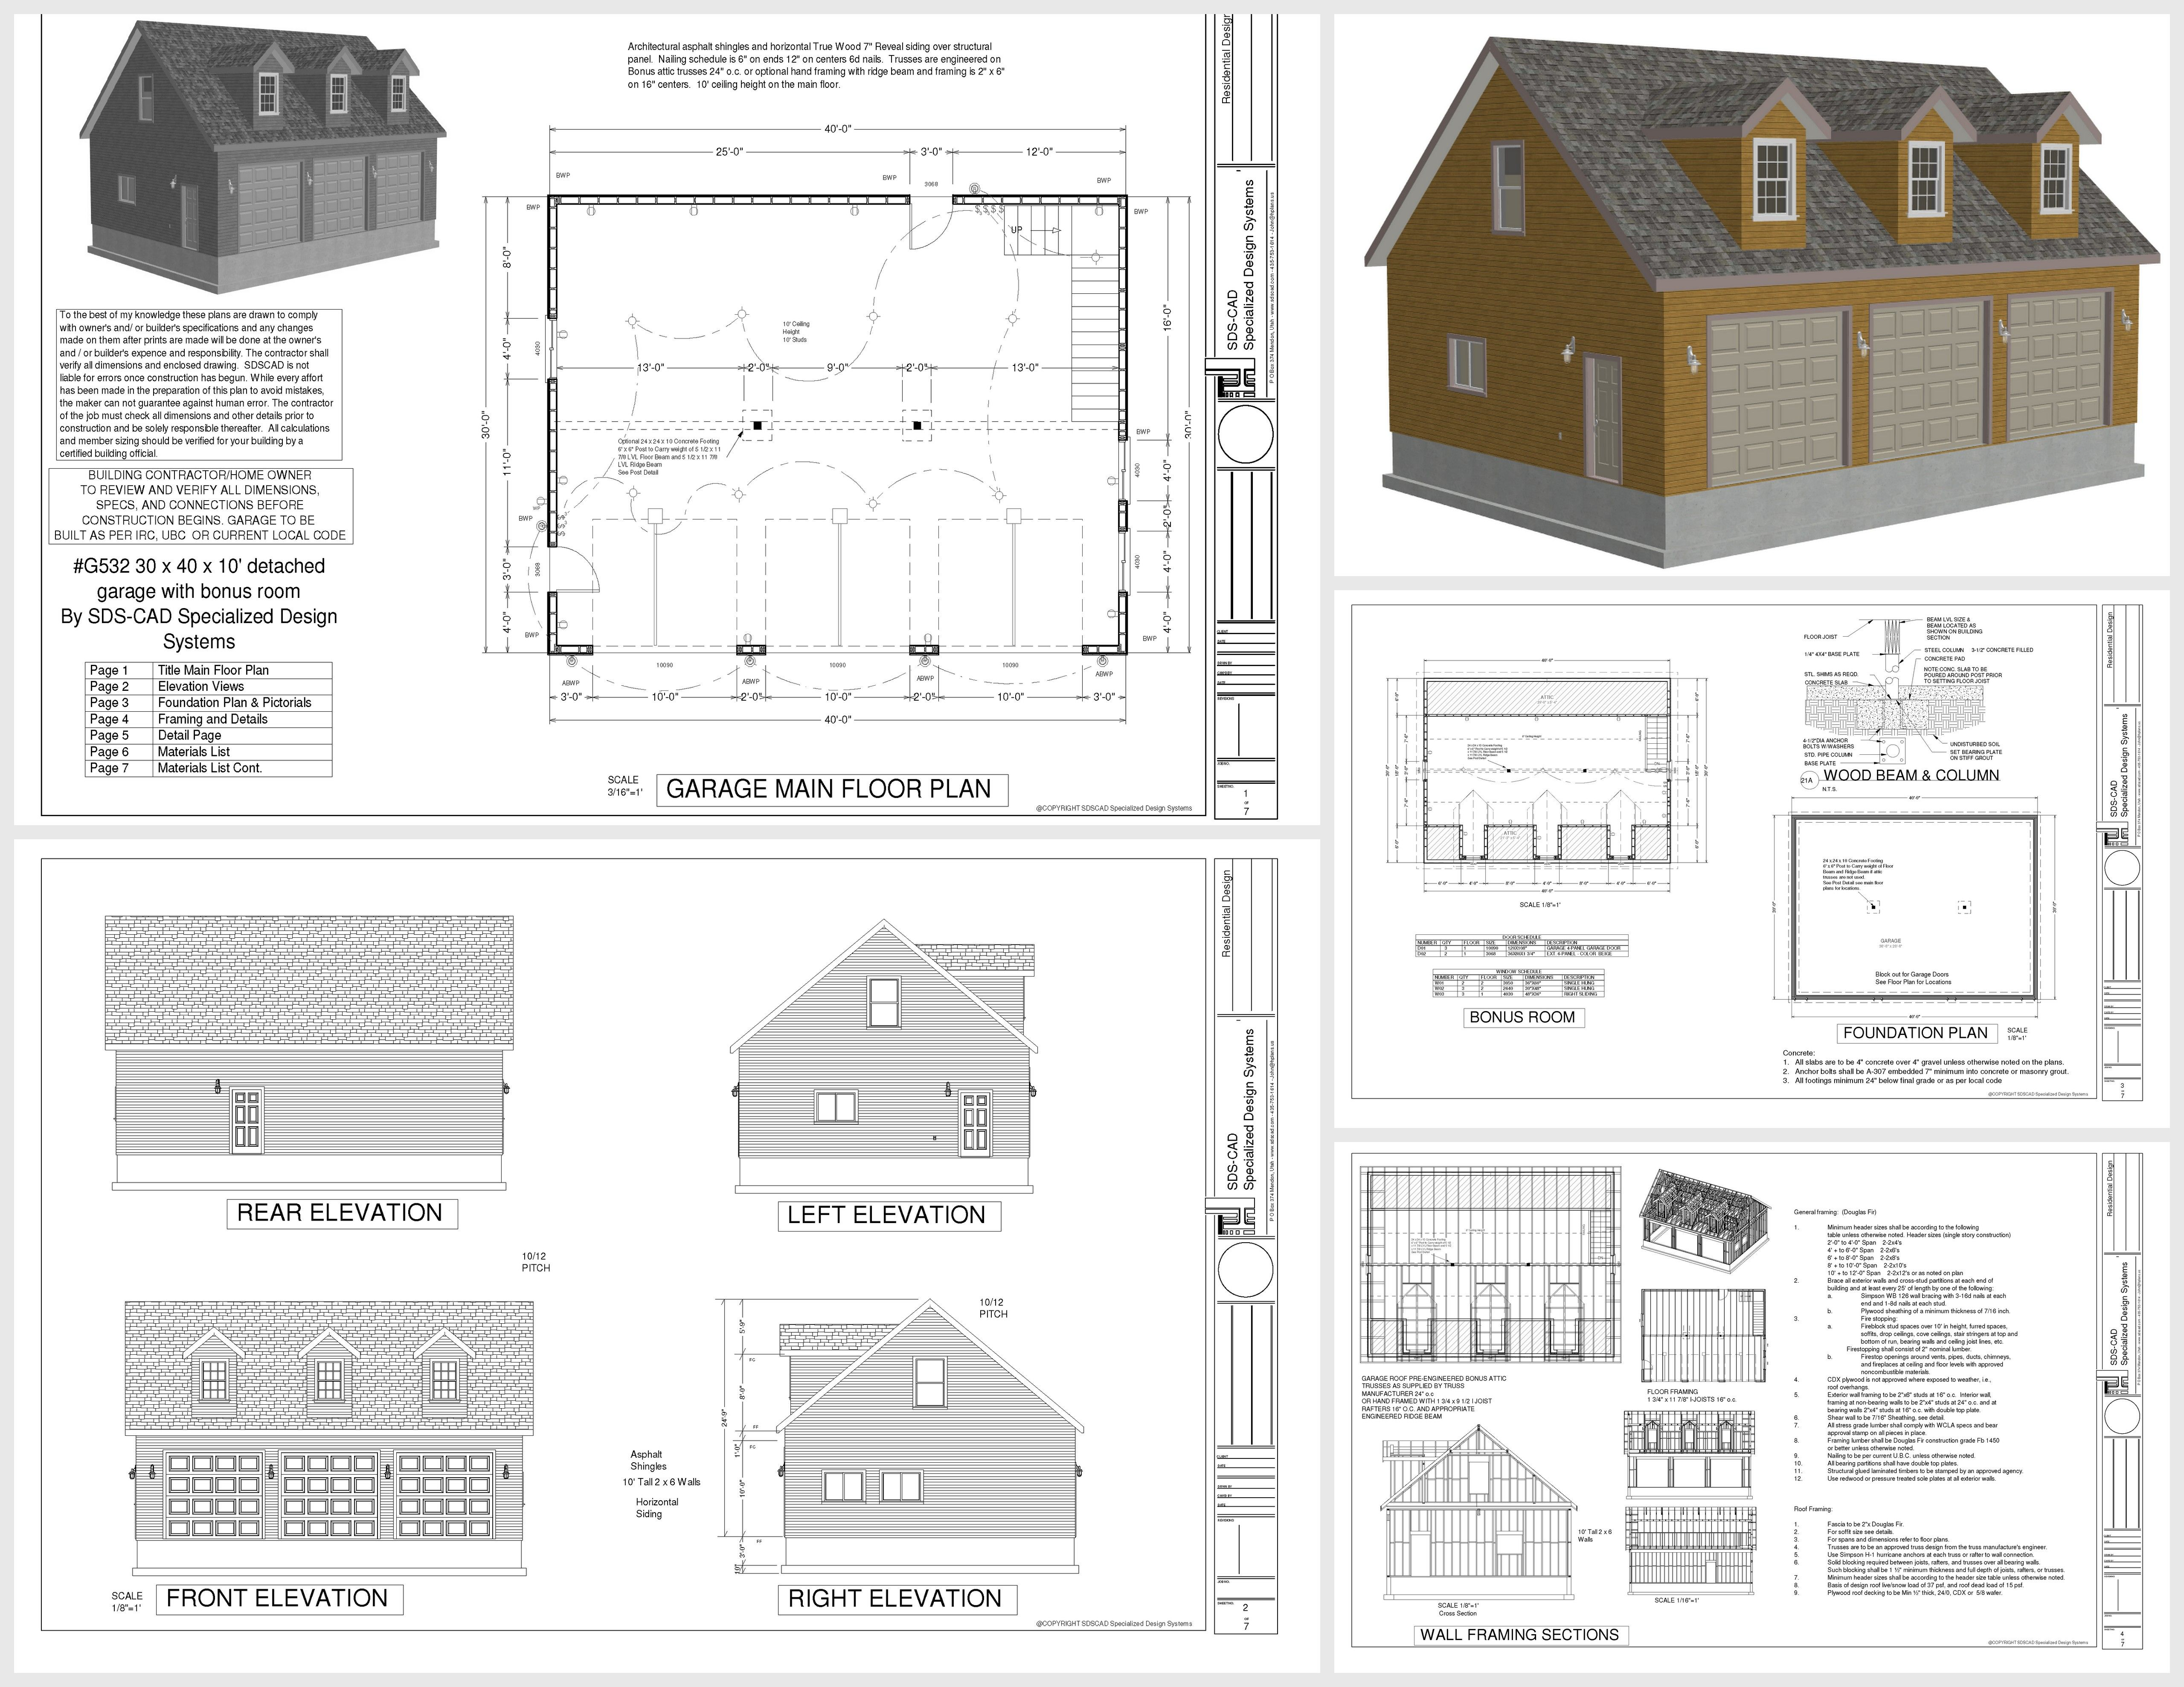 G532 30 X 40 X 10 Floor Plans Barn Plan Small House Pictures